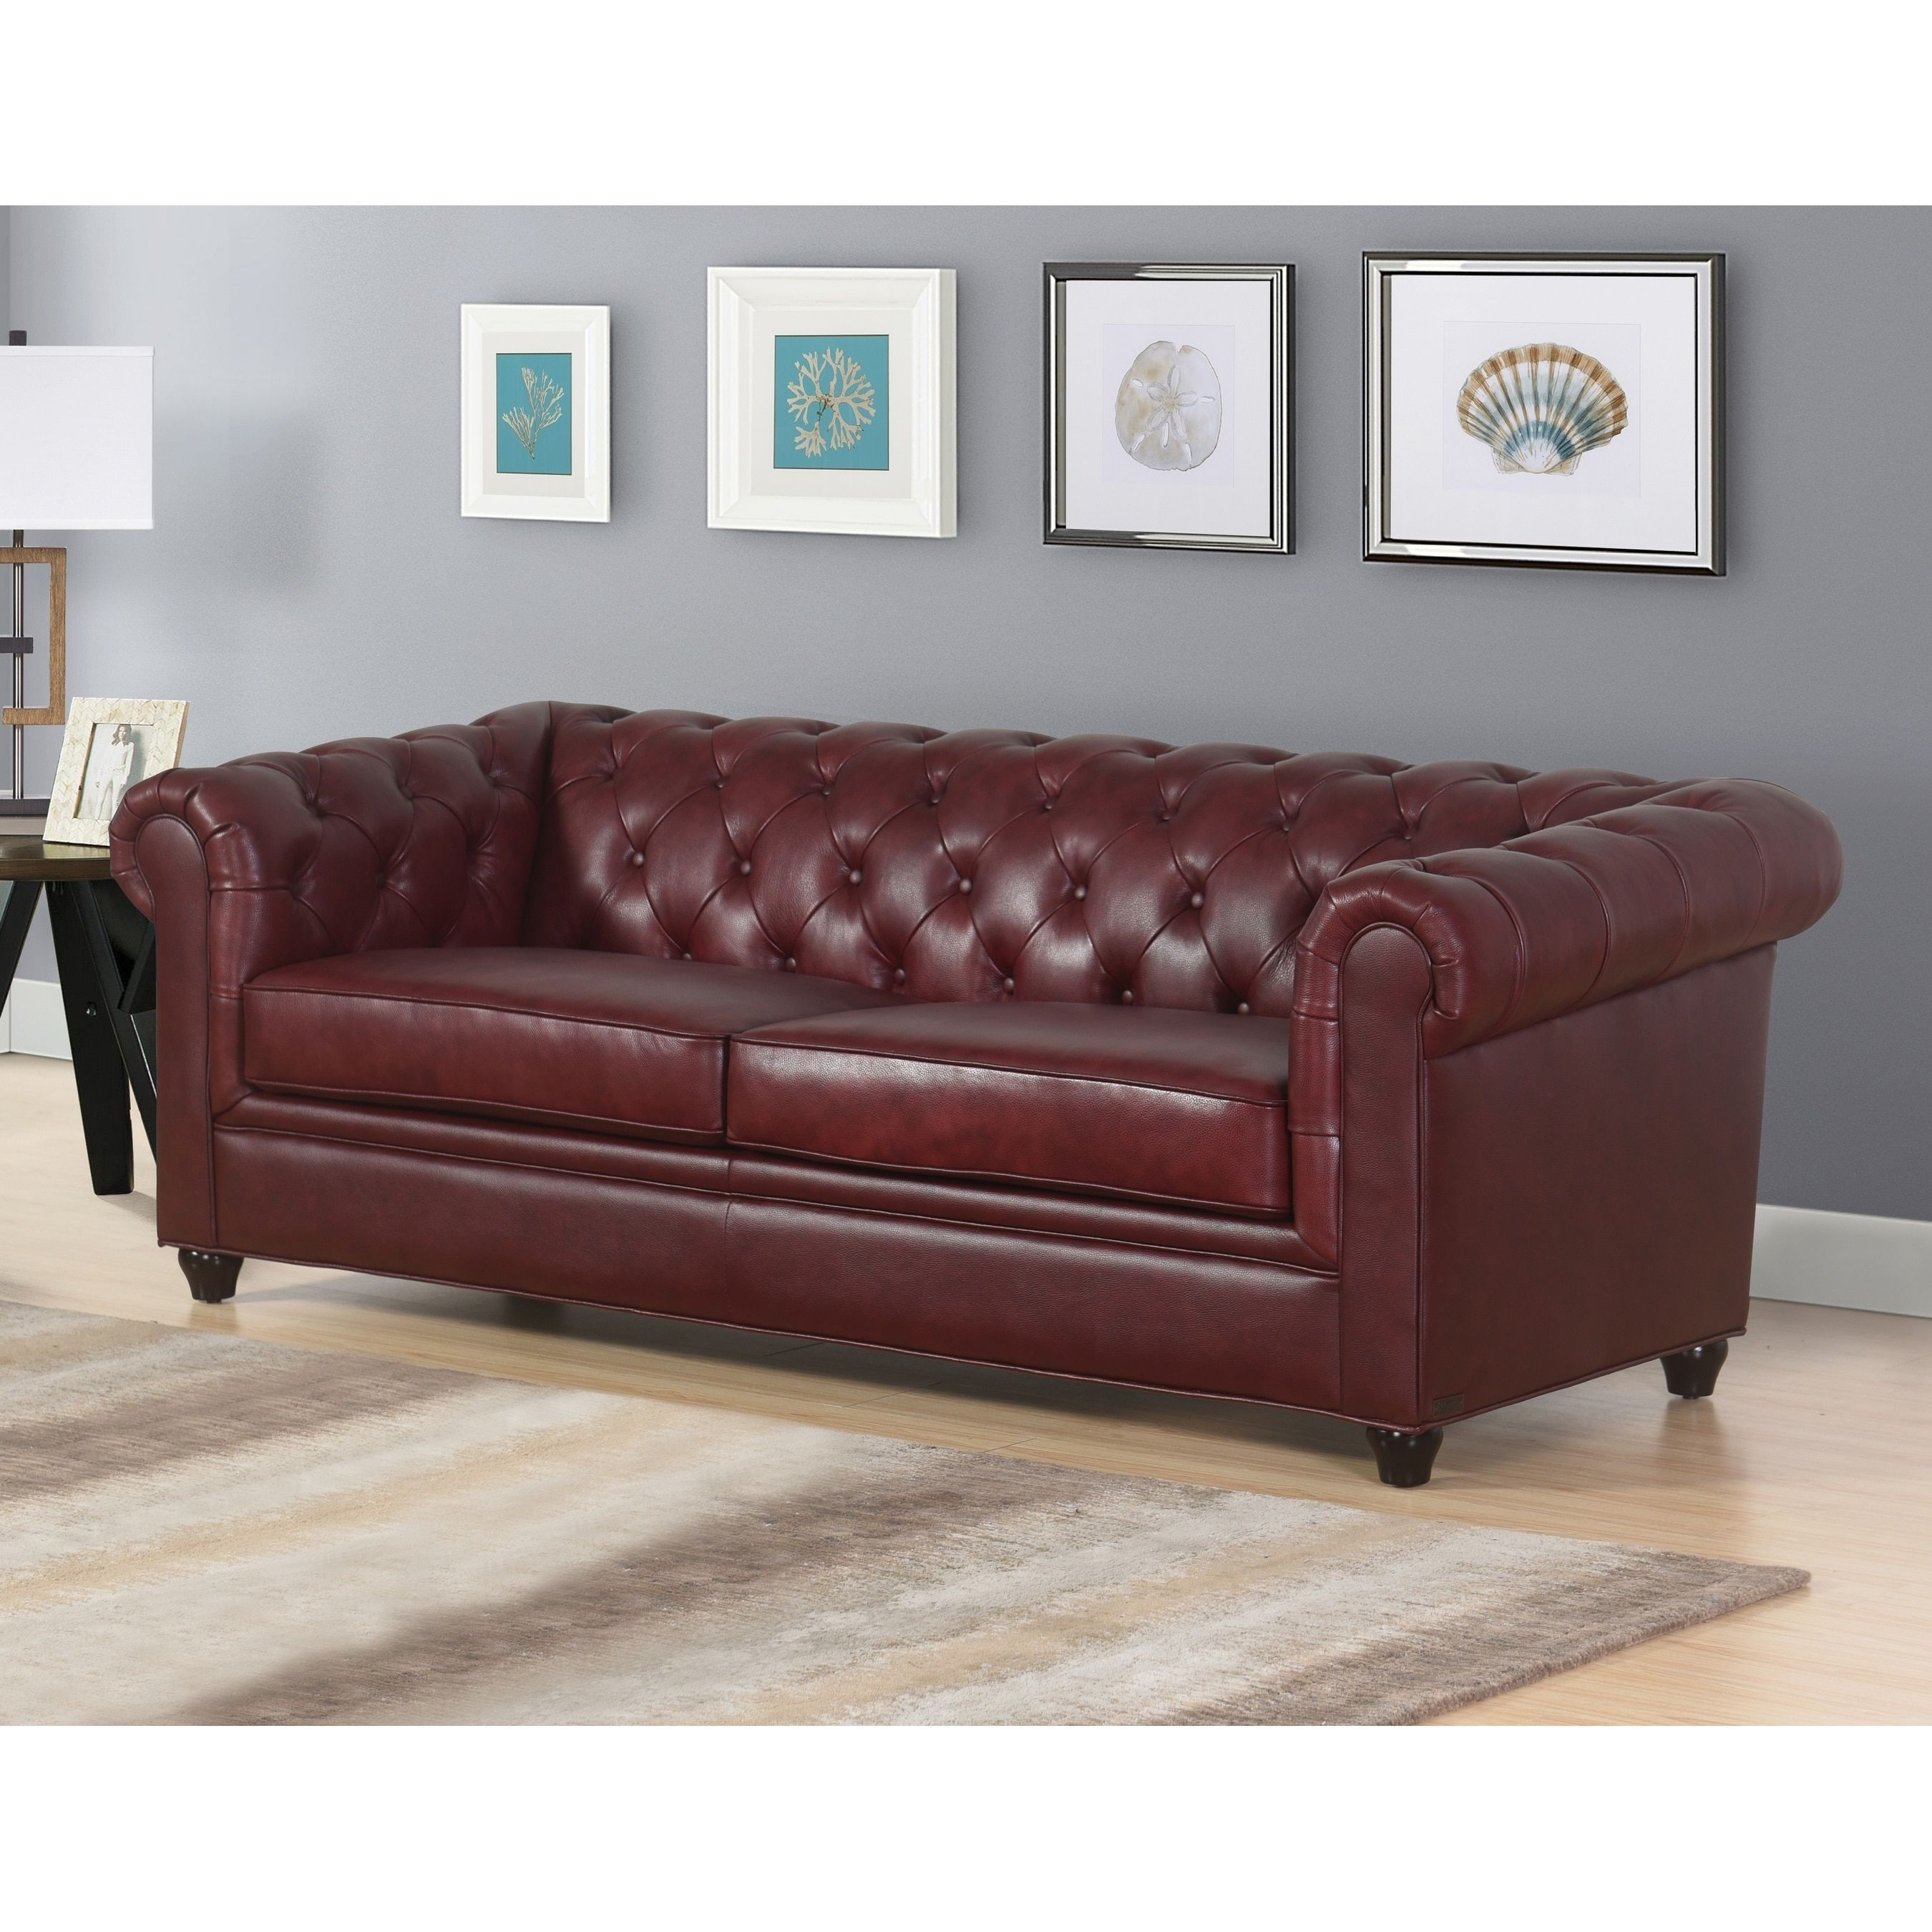 Abbyson Tuscan Top Grain Leather Chesterfield Sofa (Burgundy (Red)) (Foam)